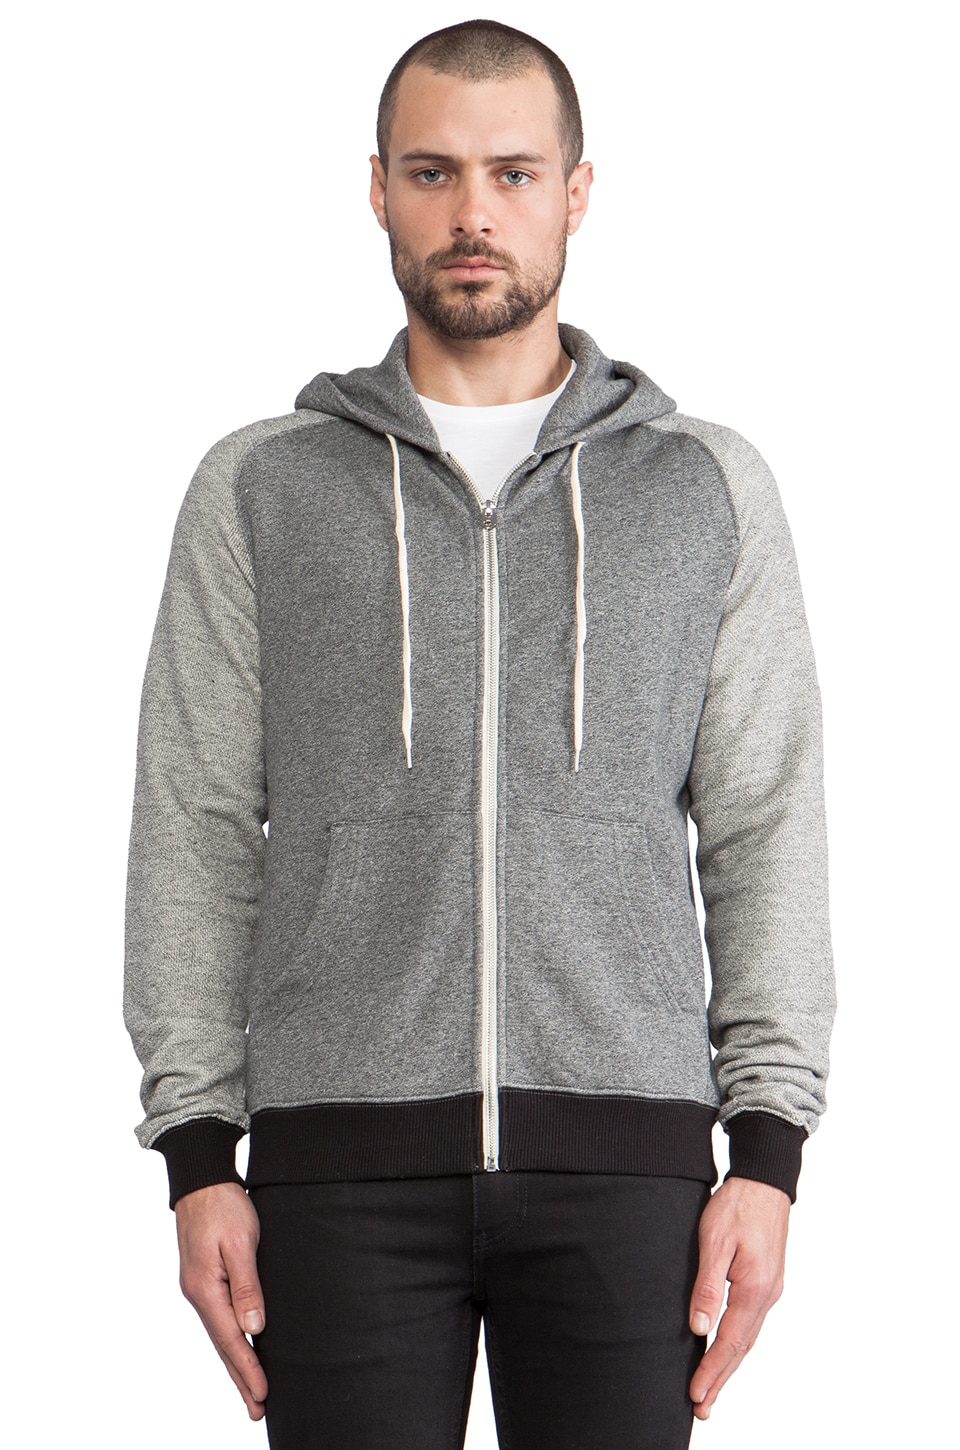 Shades of Grey by Micah Cohen Fleece Hoodie in Heather Graphite/Greyboard